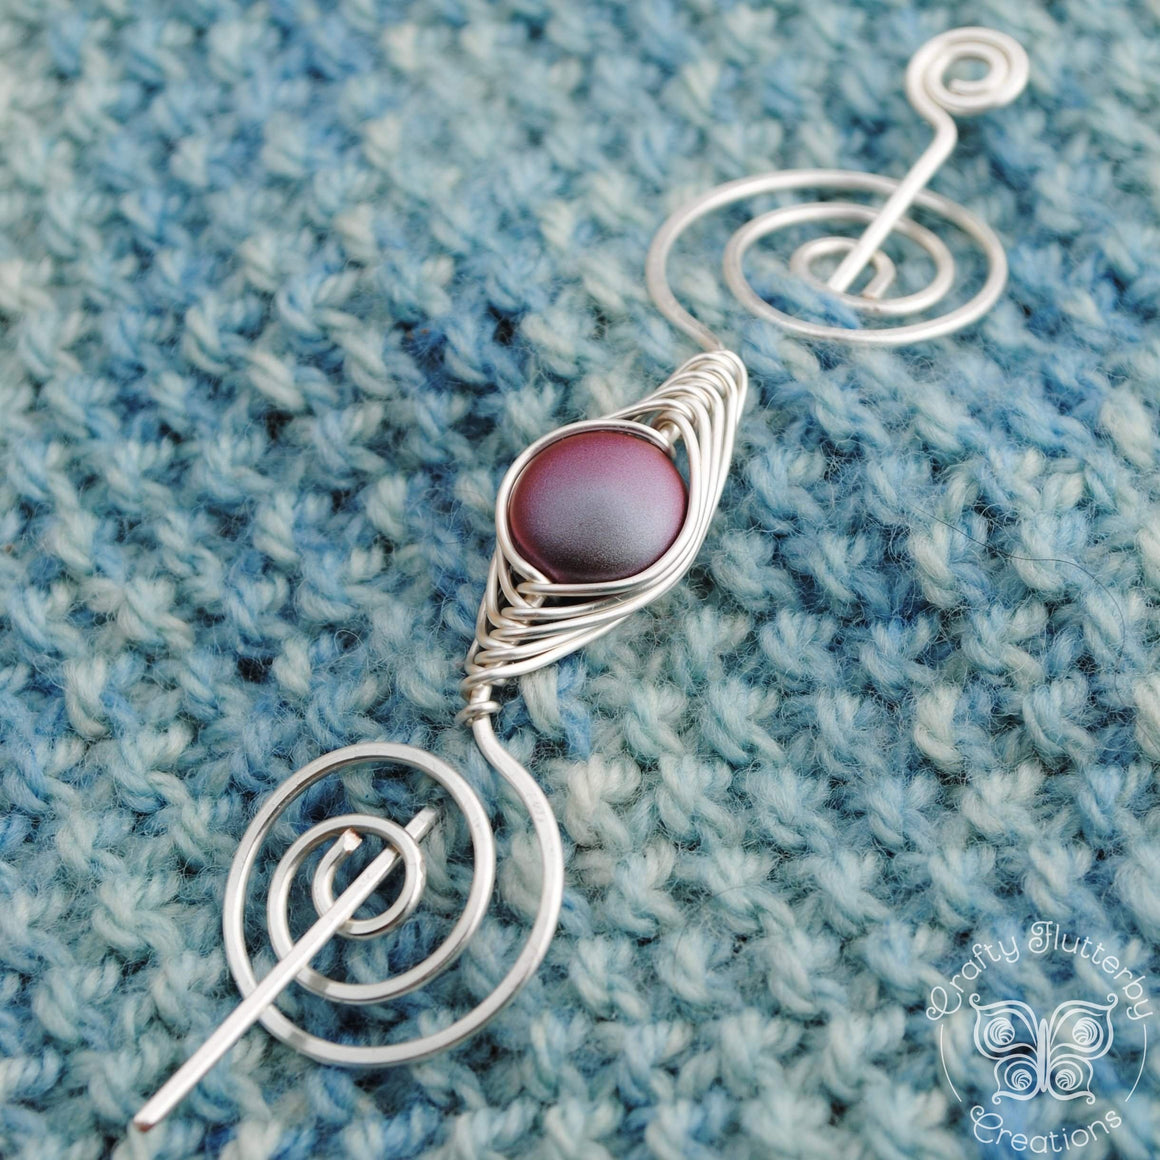 Shawl Pin, Burgundy Shimmer Shawl Pin - Noteworthy Classic - Crafty Flutterby Creations